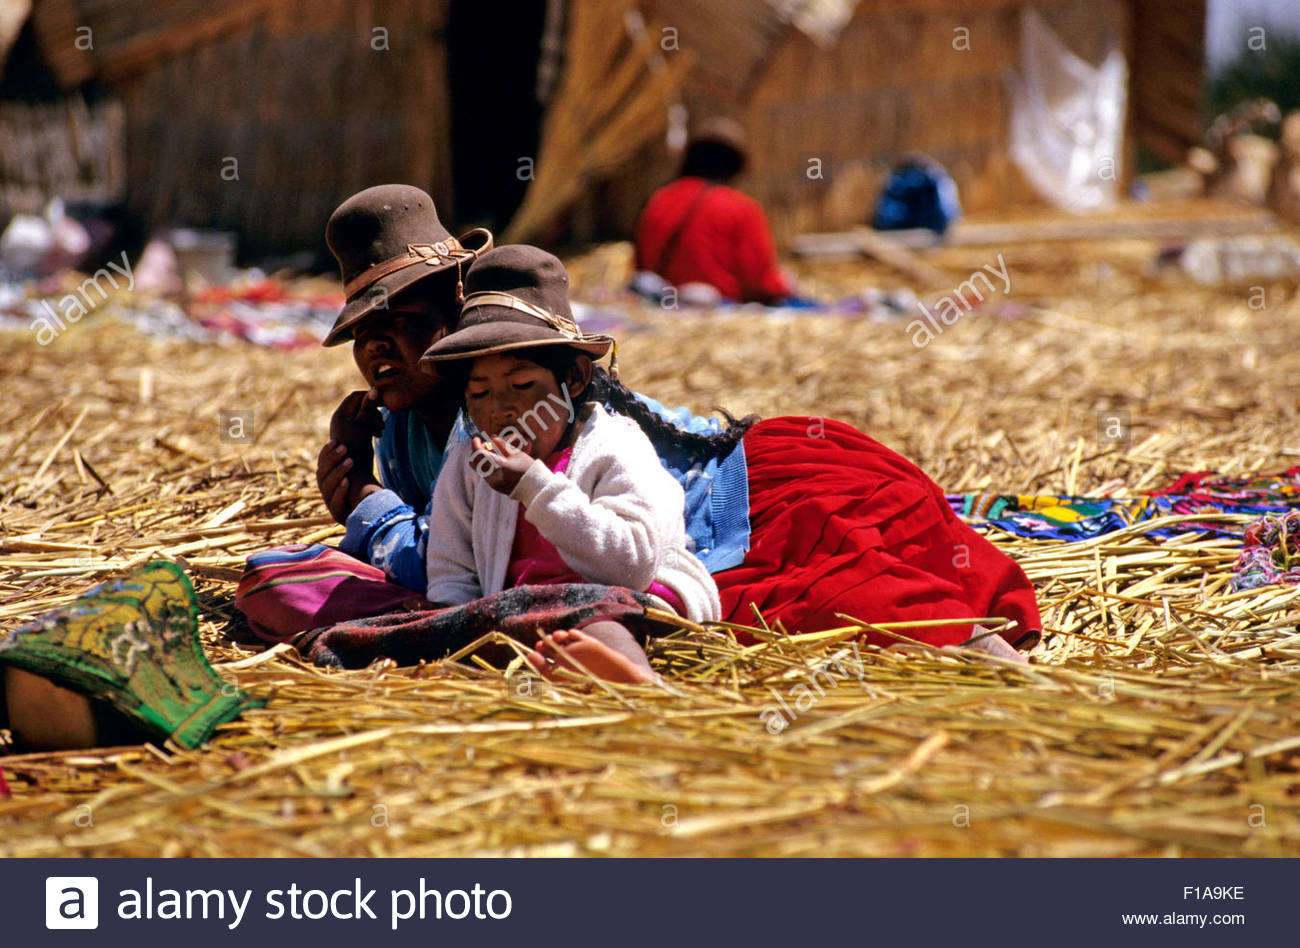 PERU / Puno / Lake Titicaca / Floating islands of the Uros / Uro girl with her mother - Stock Image